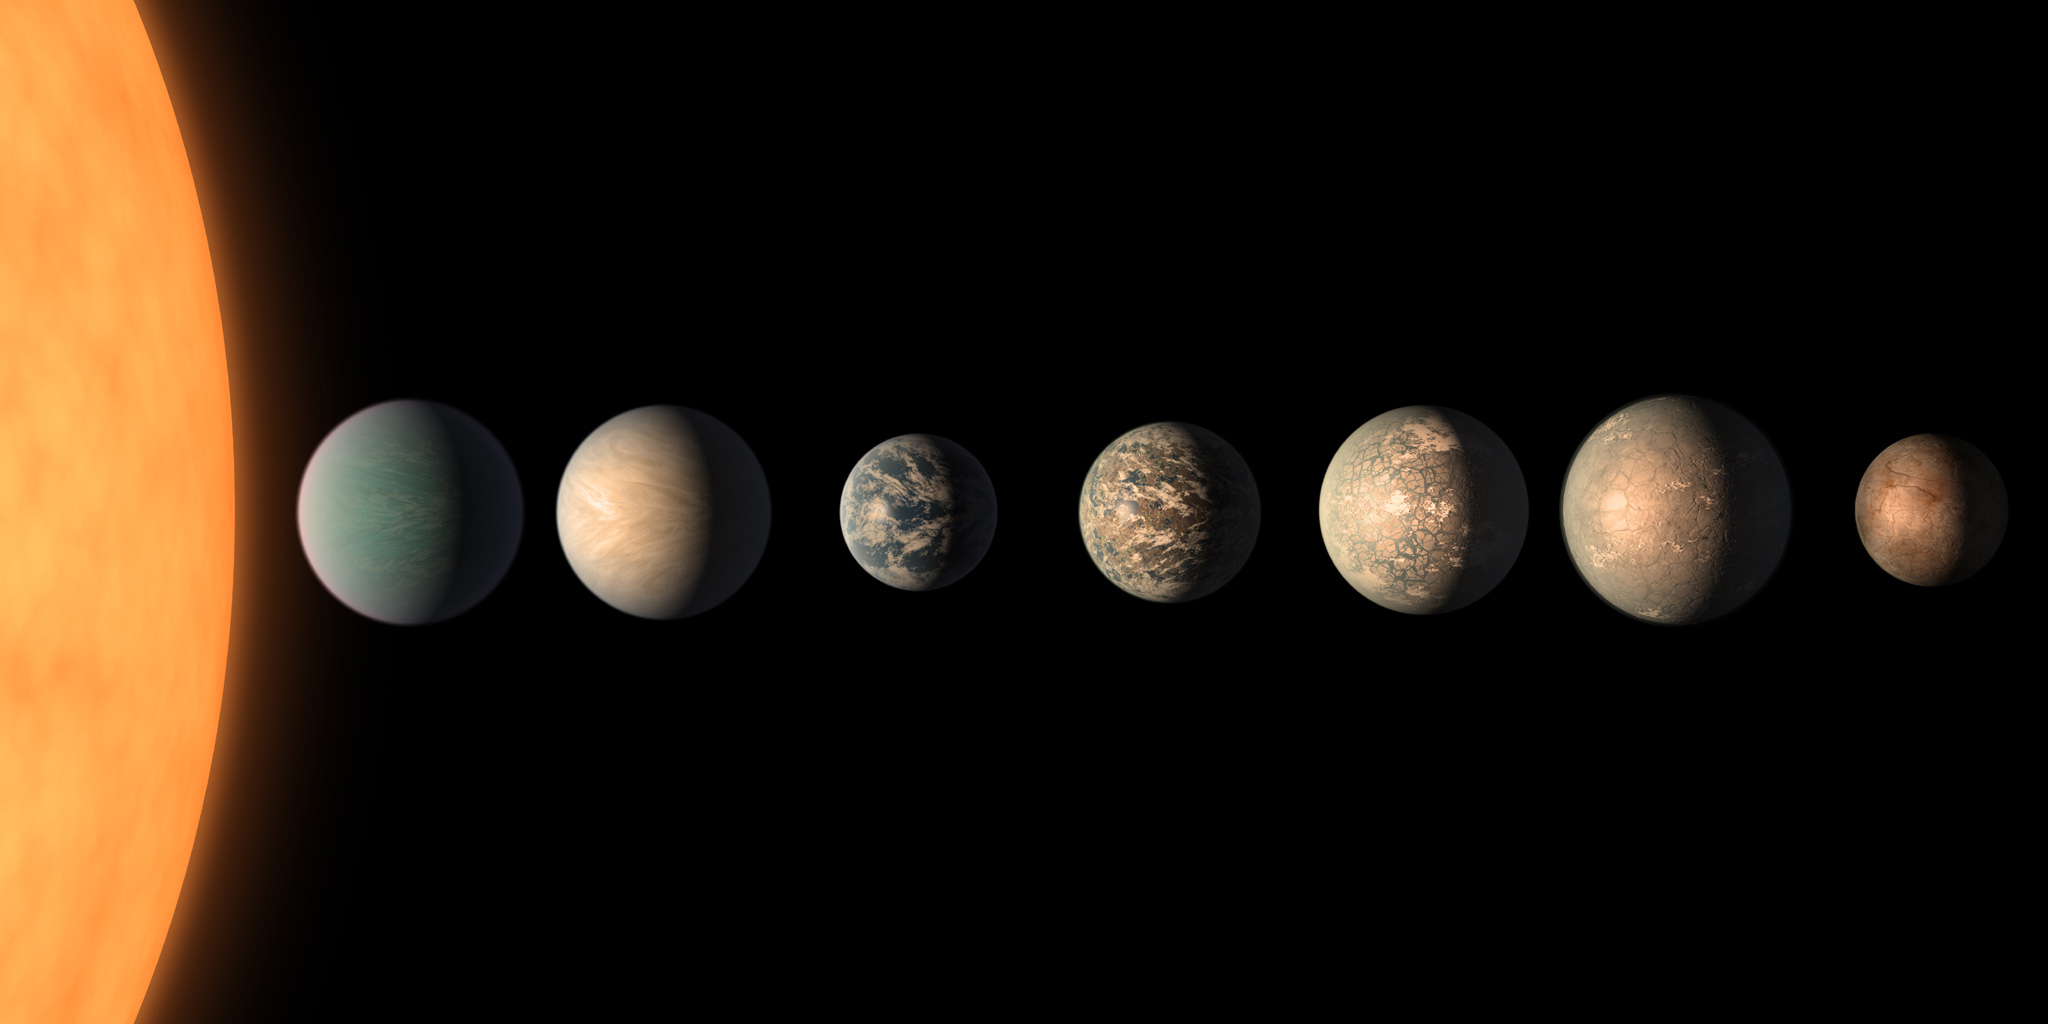 Space Images Trappist 1 Planet Lineup